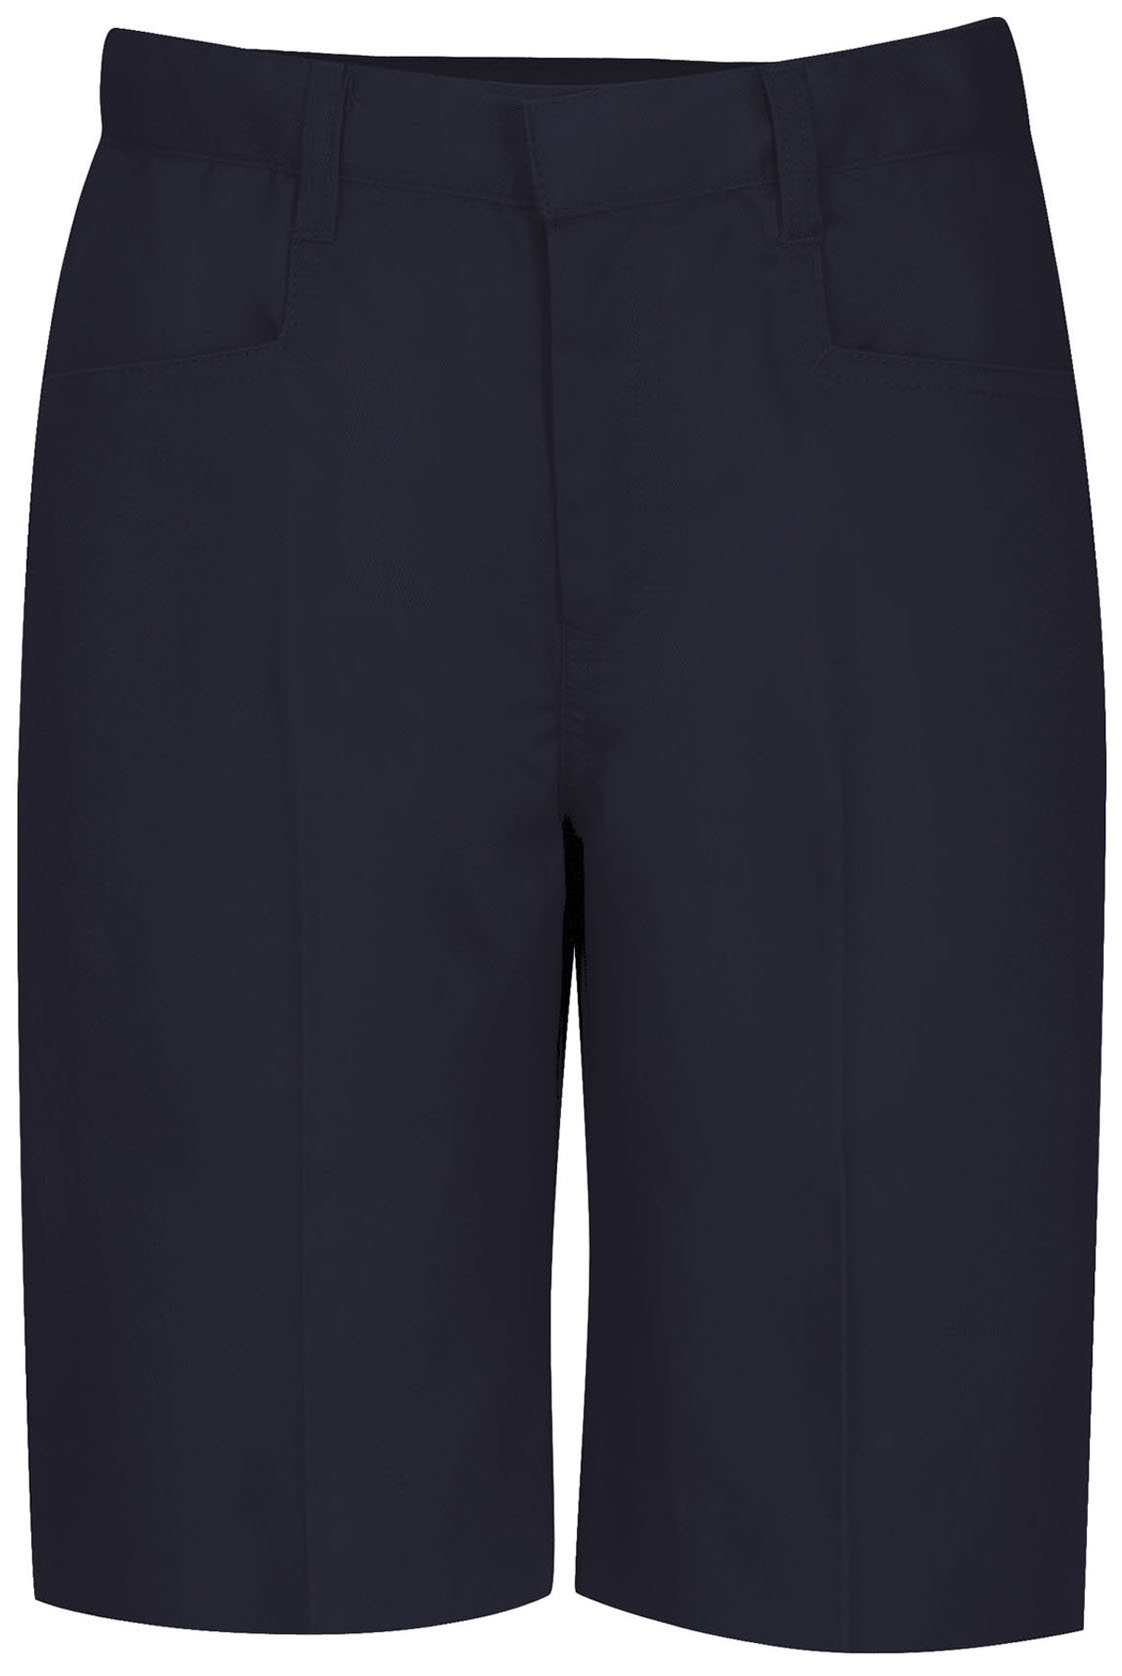 d1f3a84c09 Classroom Girls Plus Low-Rise Short in Dark Navy 52073-DNVY from ...